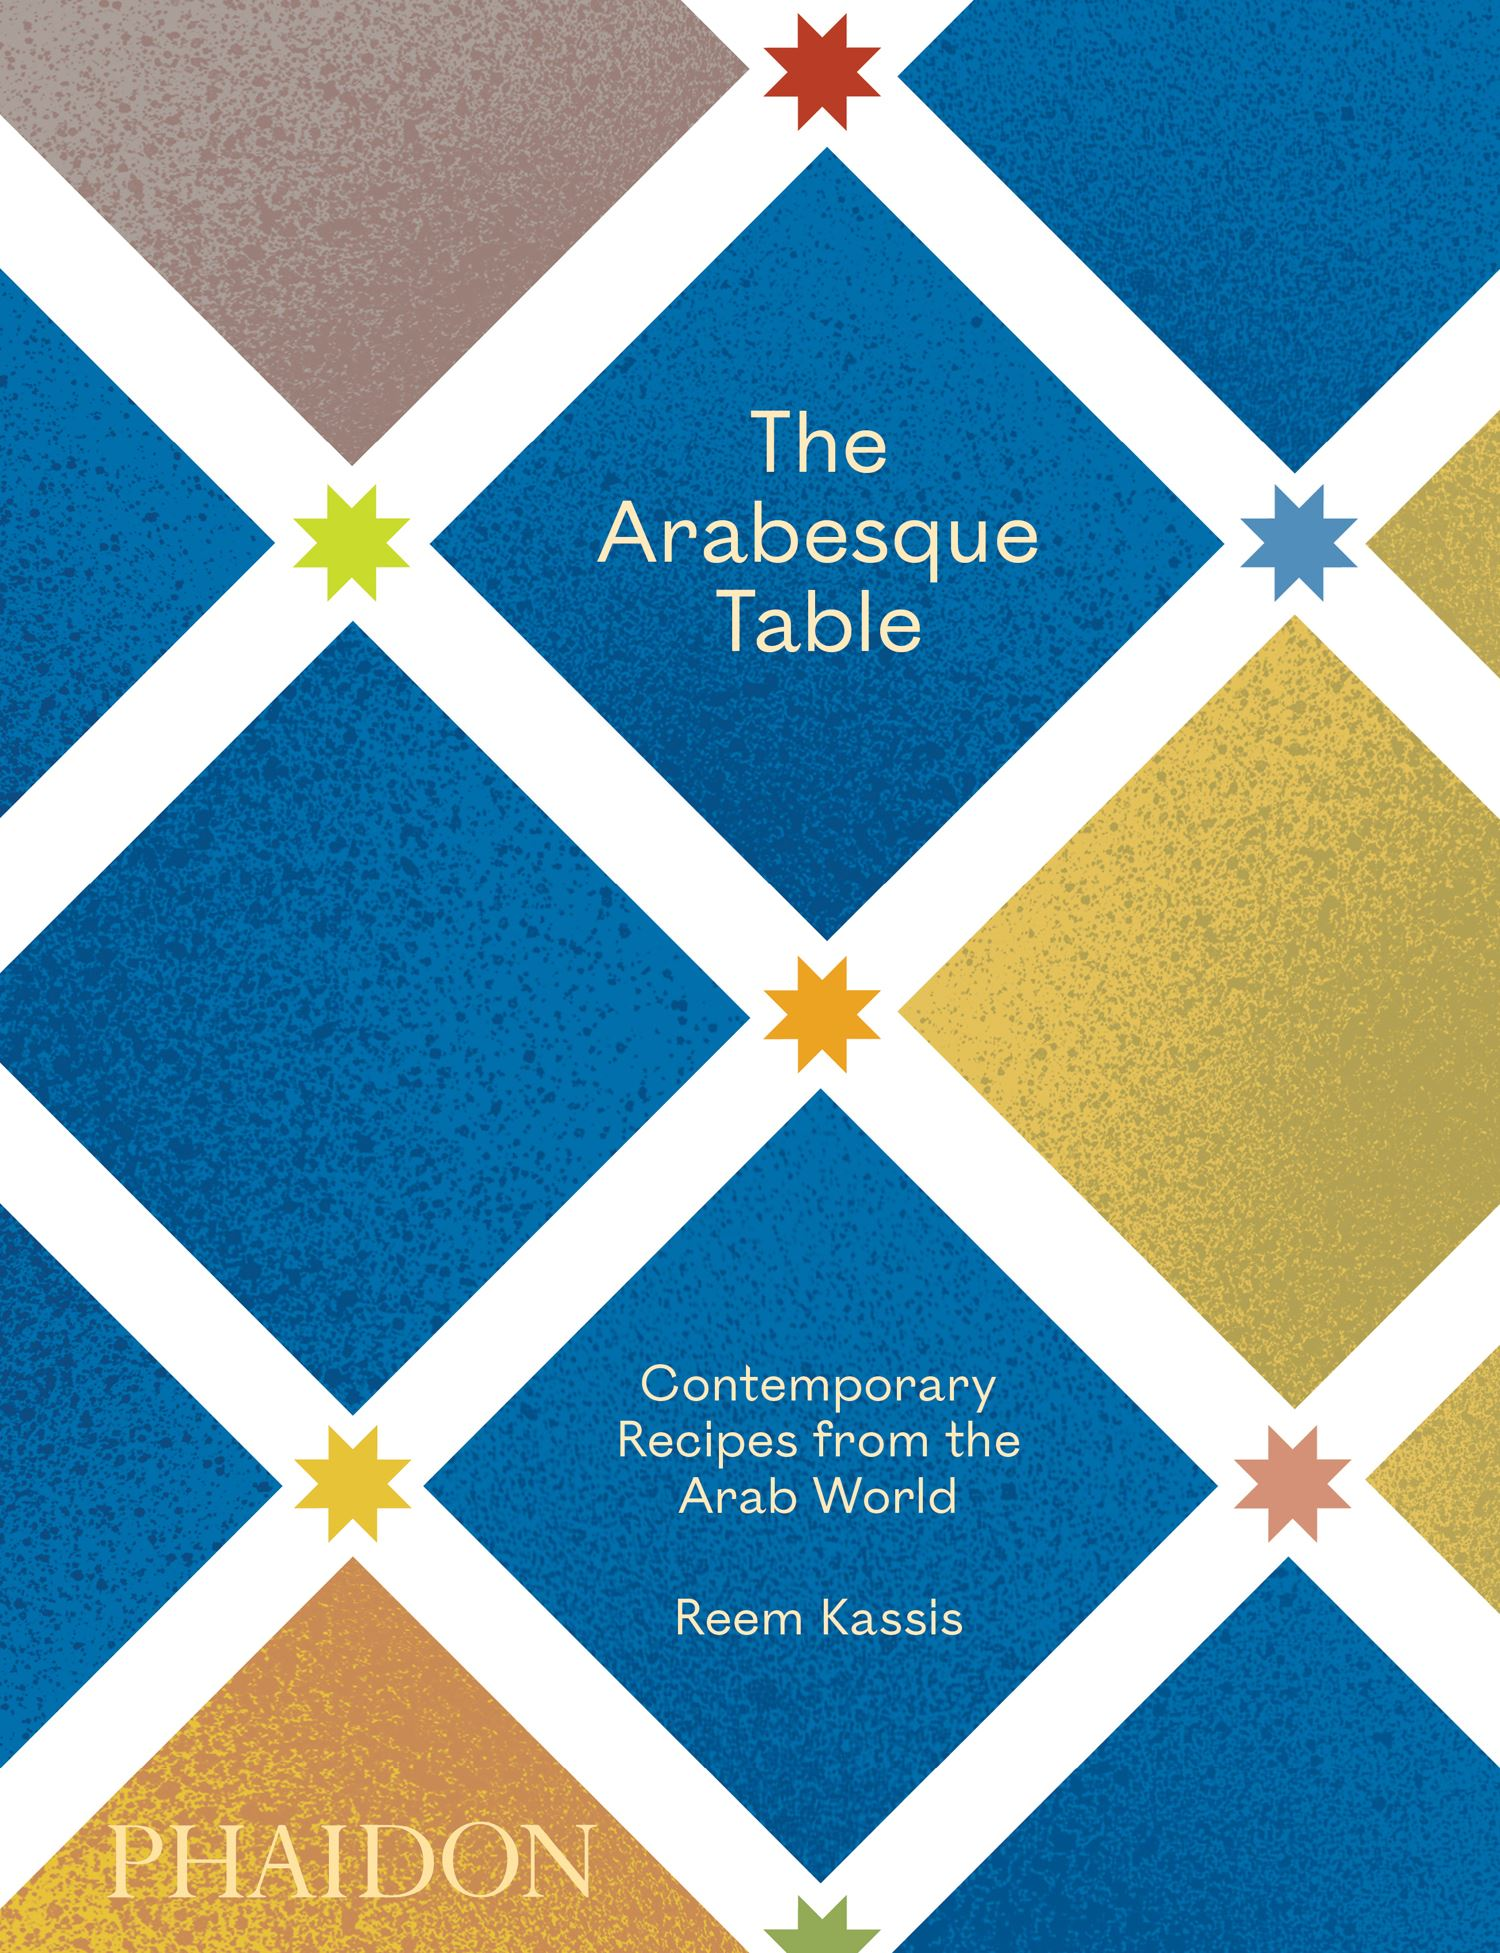 The Arabesque Table Cookery Book